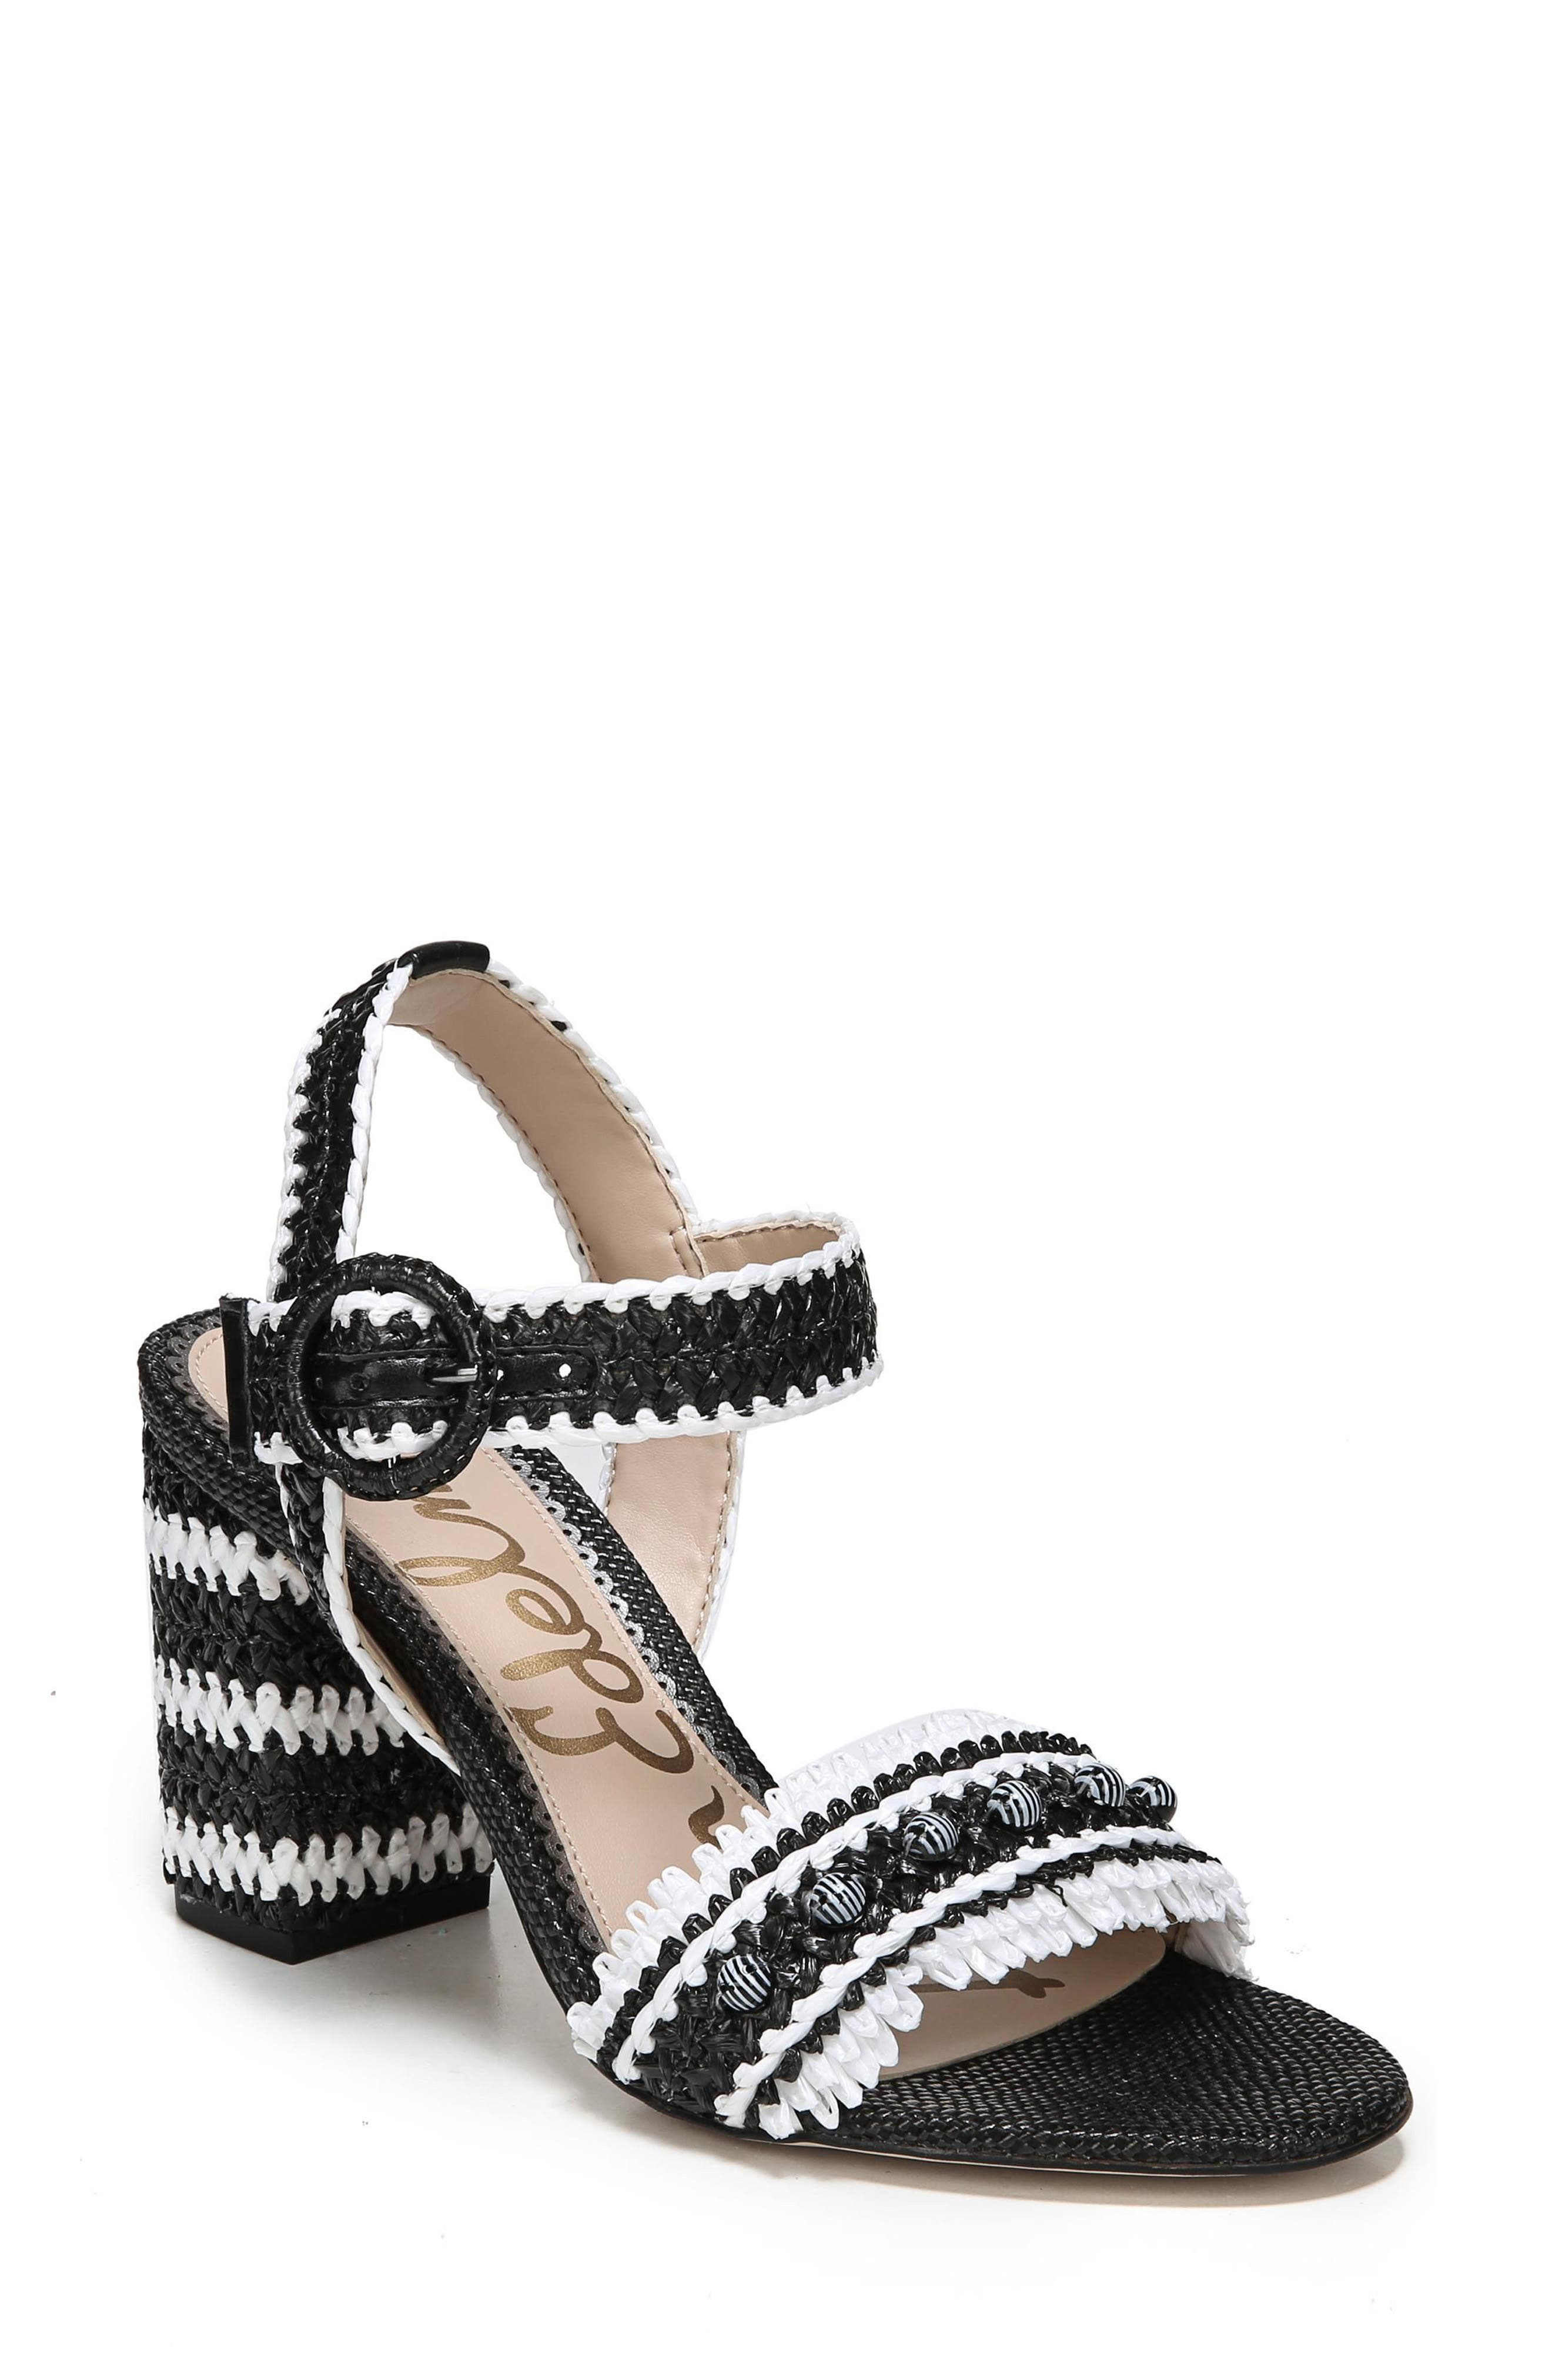 0a488c330ba4 Sam Edelman Women S Olisa Raffia Block Heel Sandals In Black